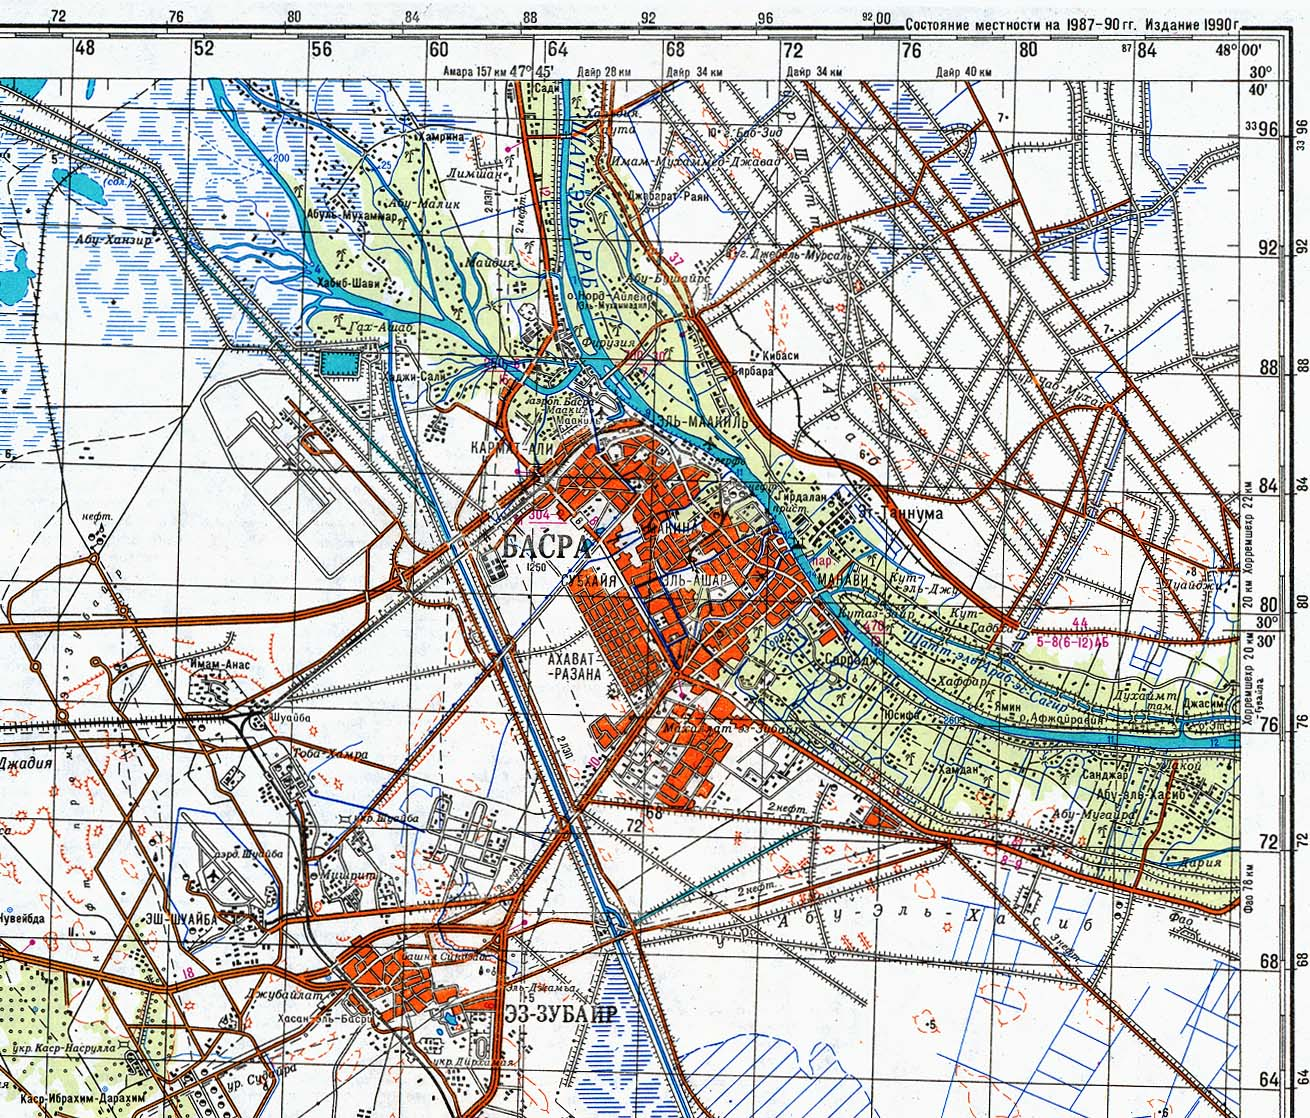 Topographic map of Basra 1990